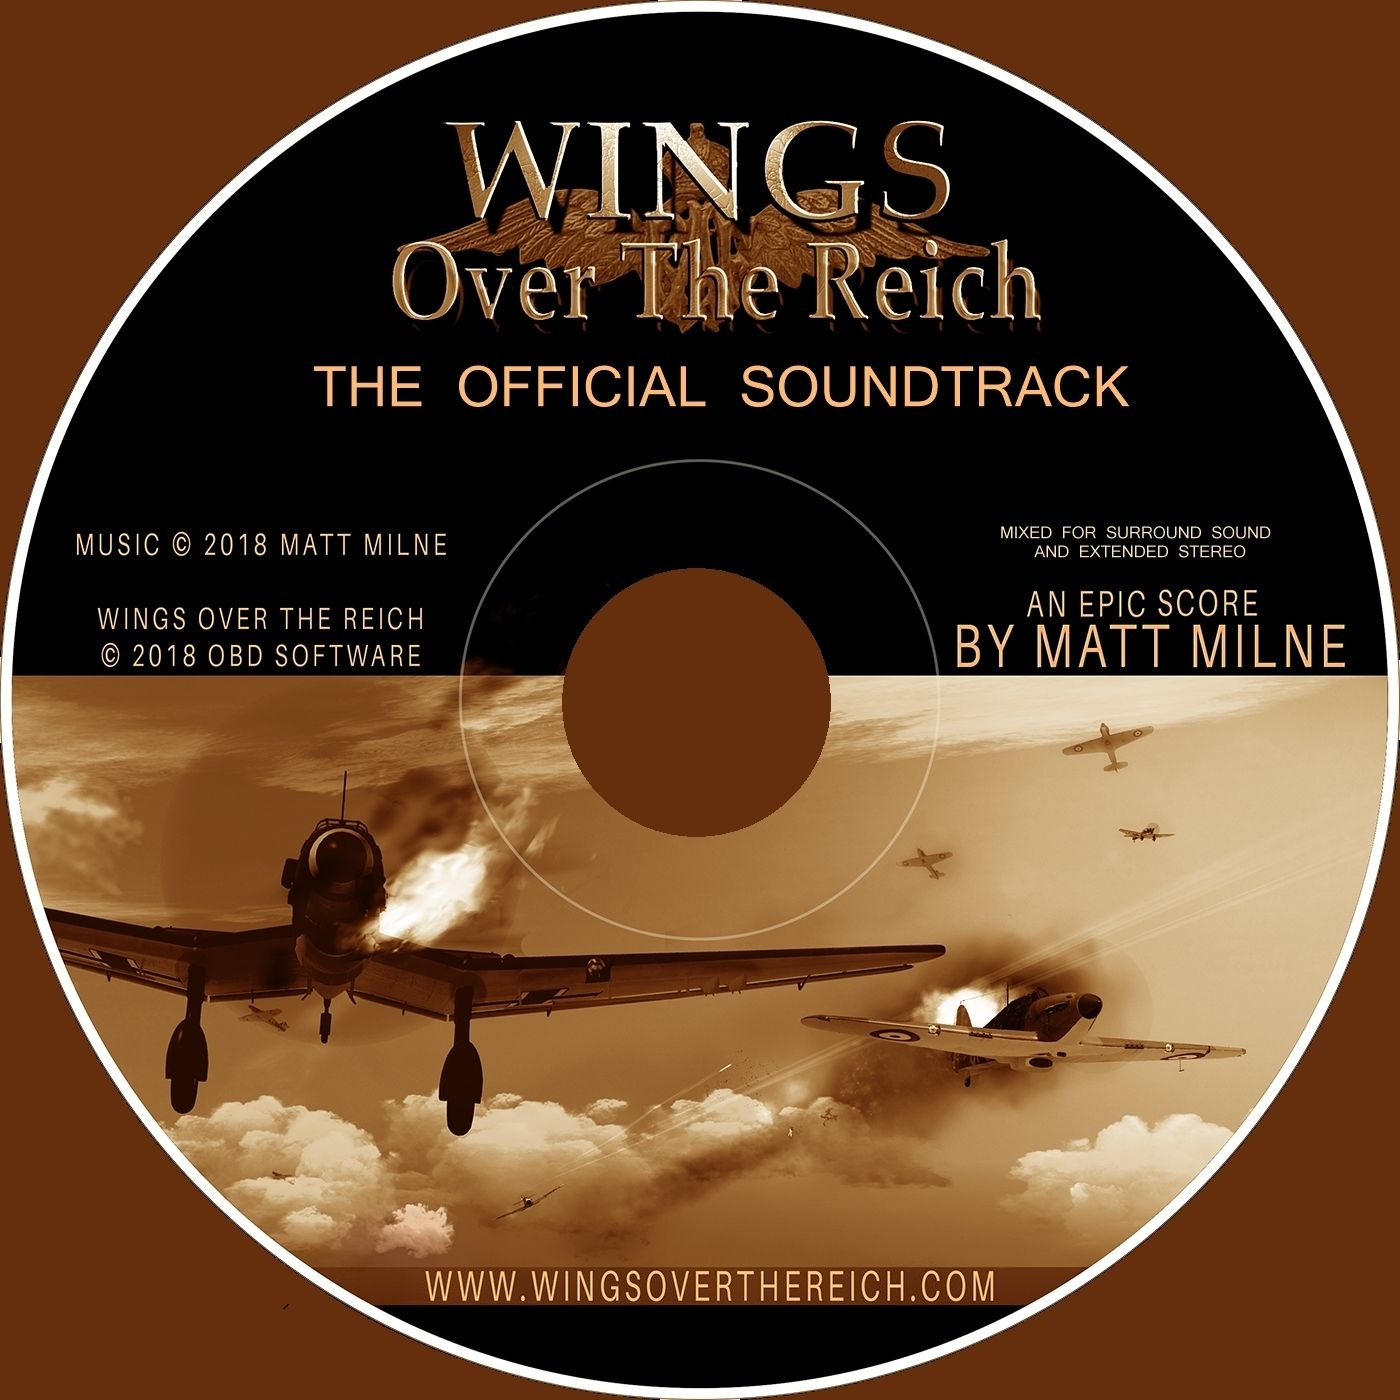 Wings Over the Reich